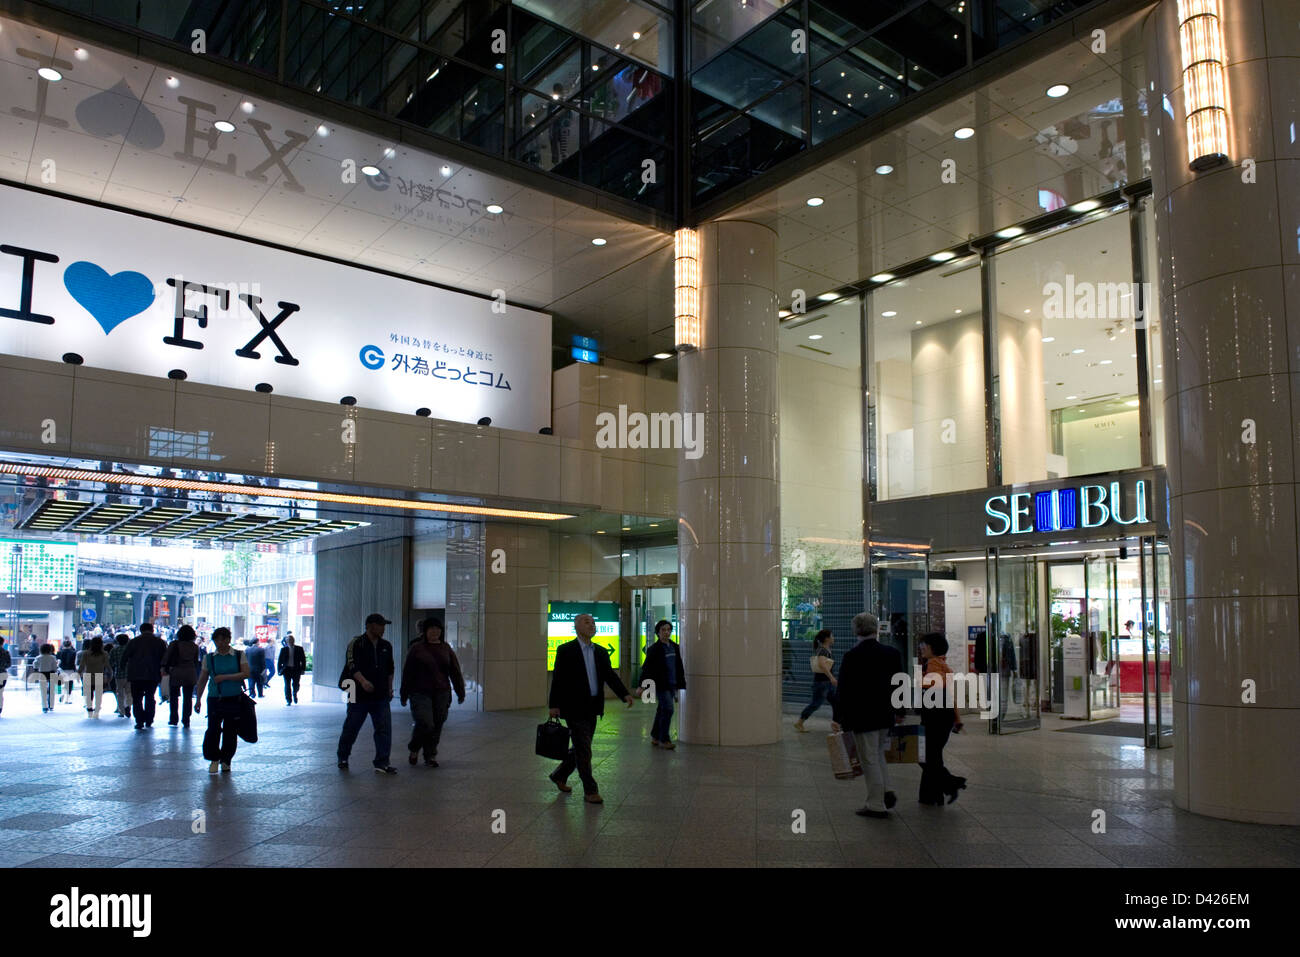 Pedestrians passing through the Yurakucho Marion Building in the Yurakucho district of downtown Tokyo. - Stock Image